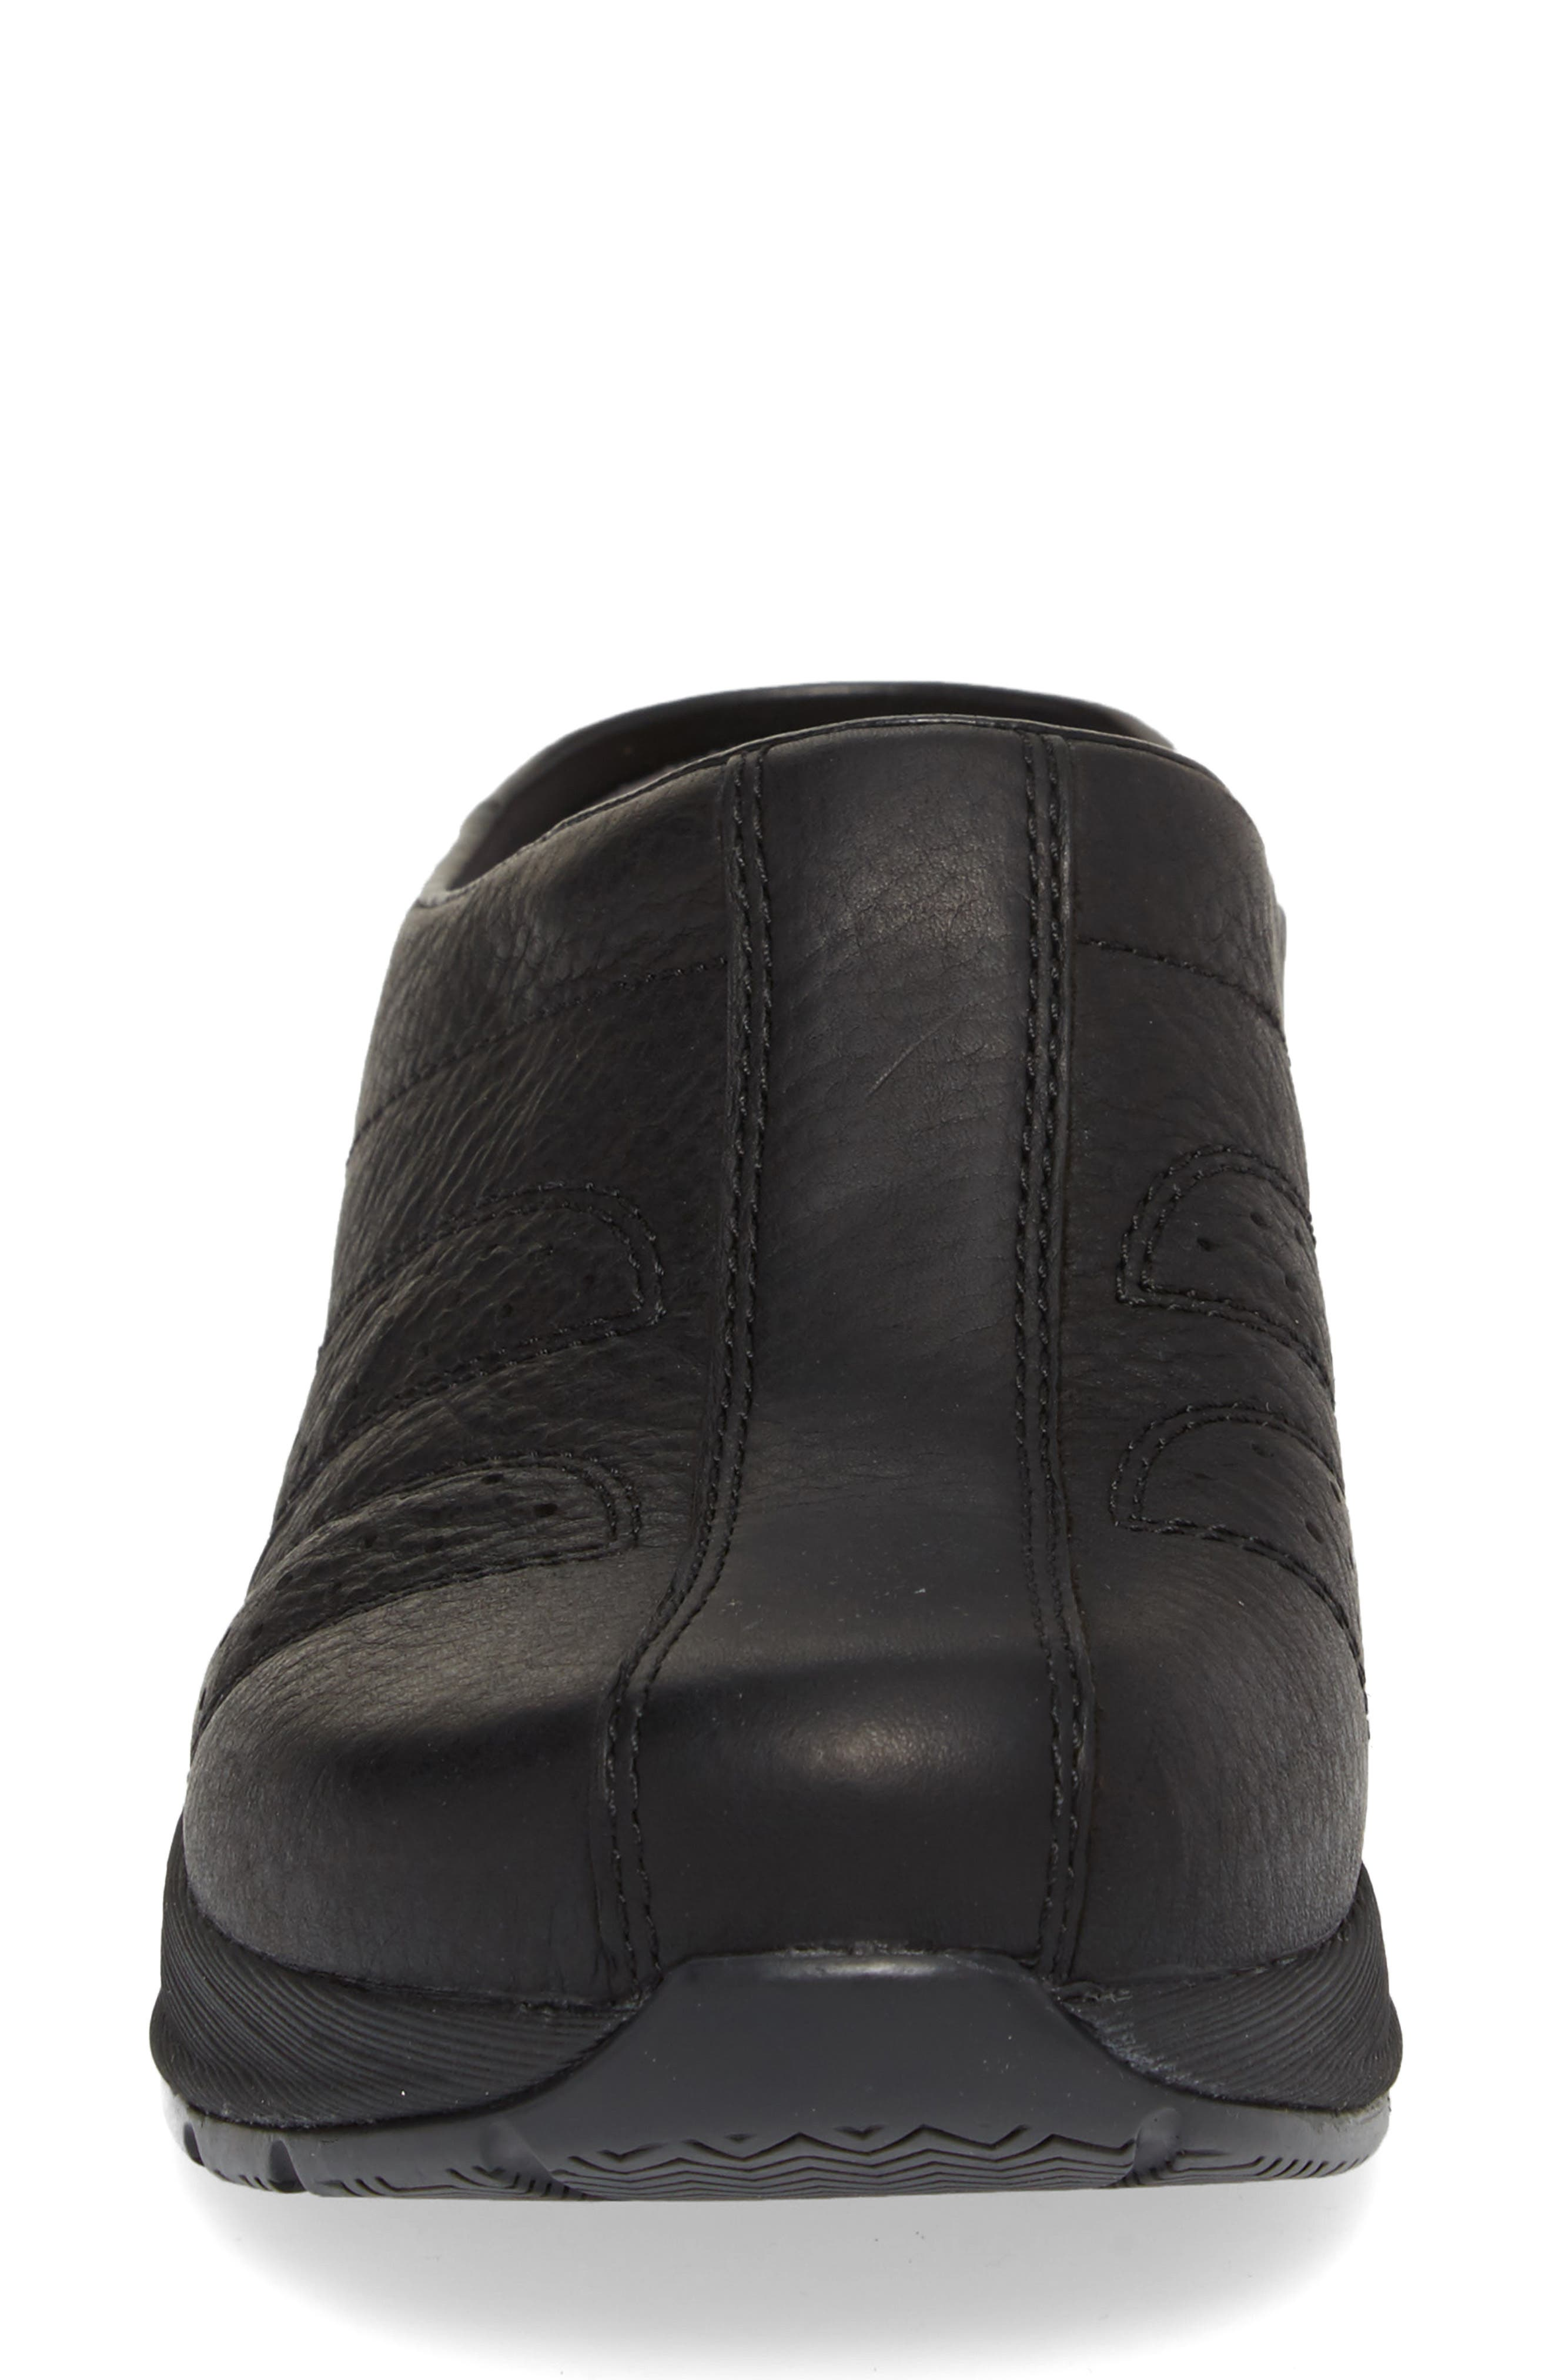 Dankso Shelly Mule,                             Alternate thumbnail 4, color,                             BLACK LEATHER